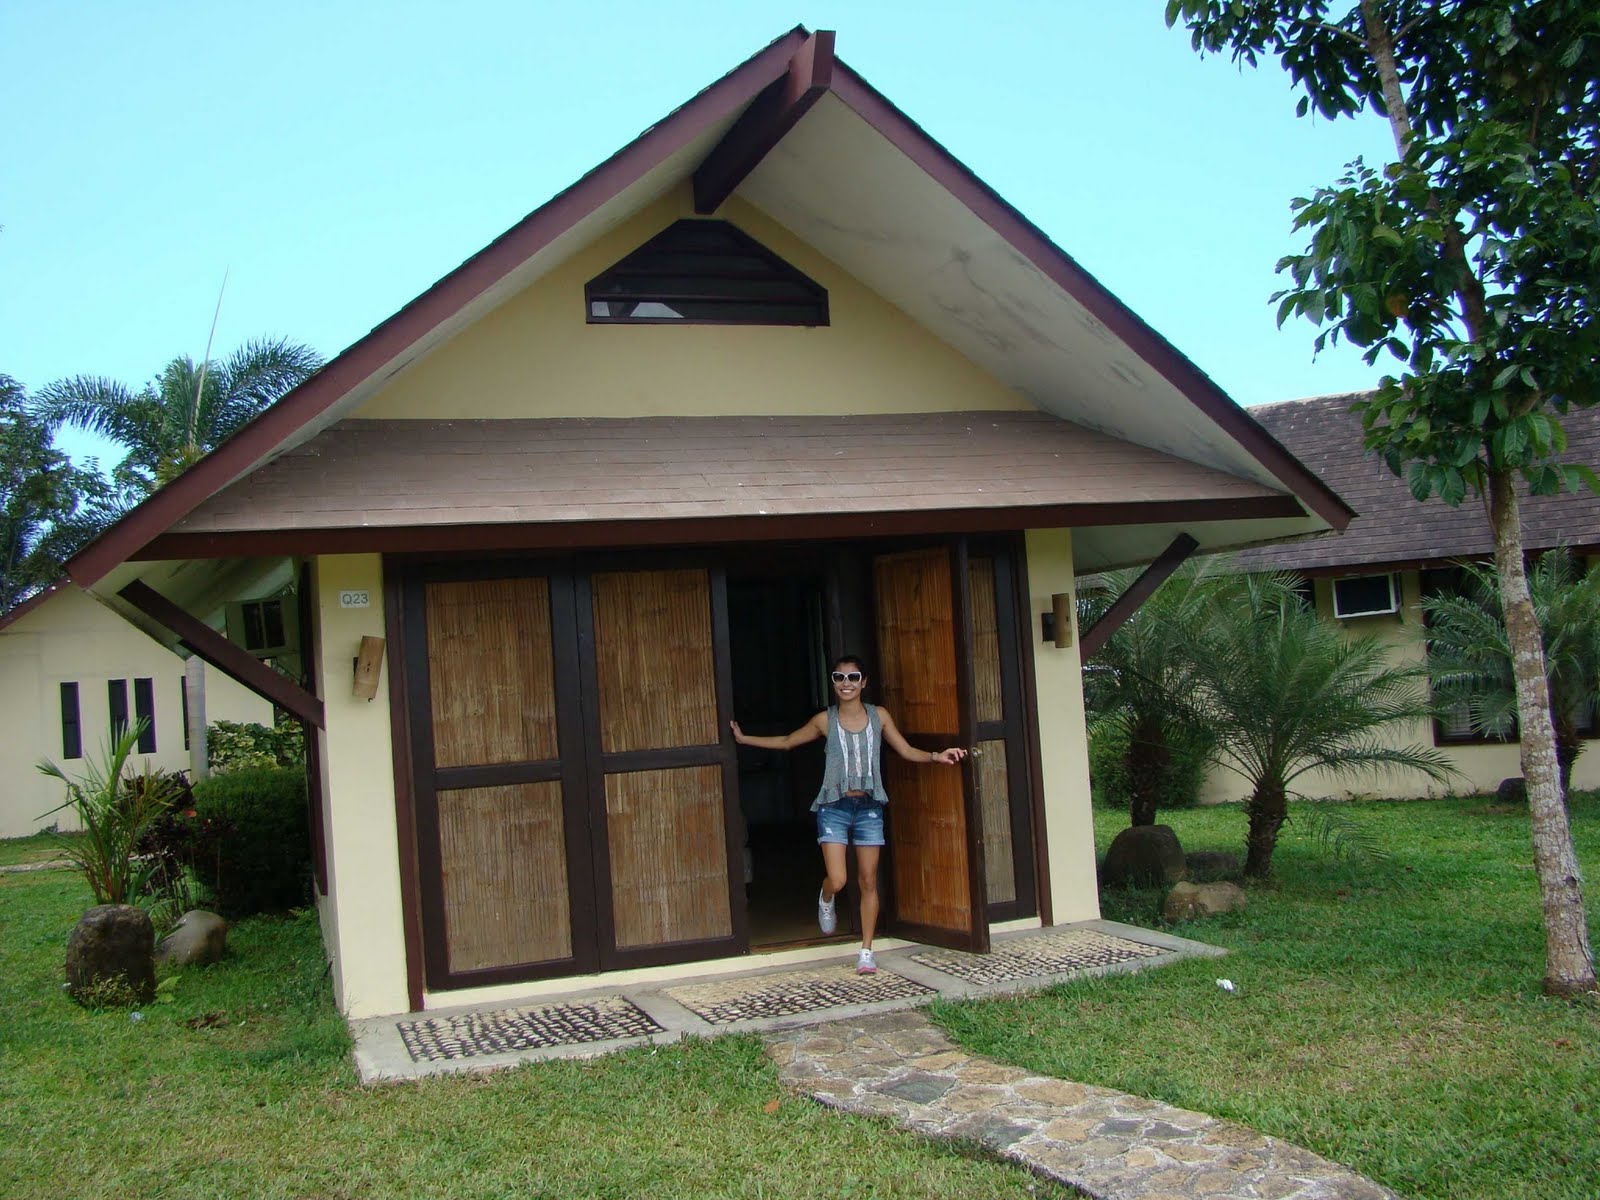 Rest house designs in philippines